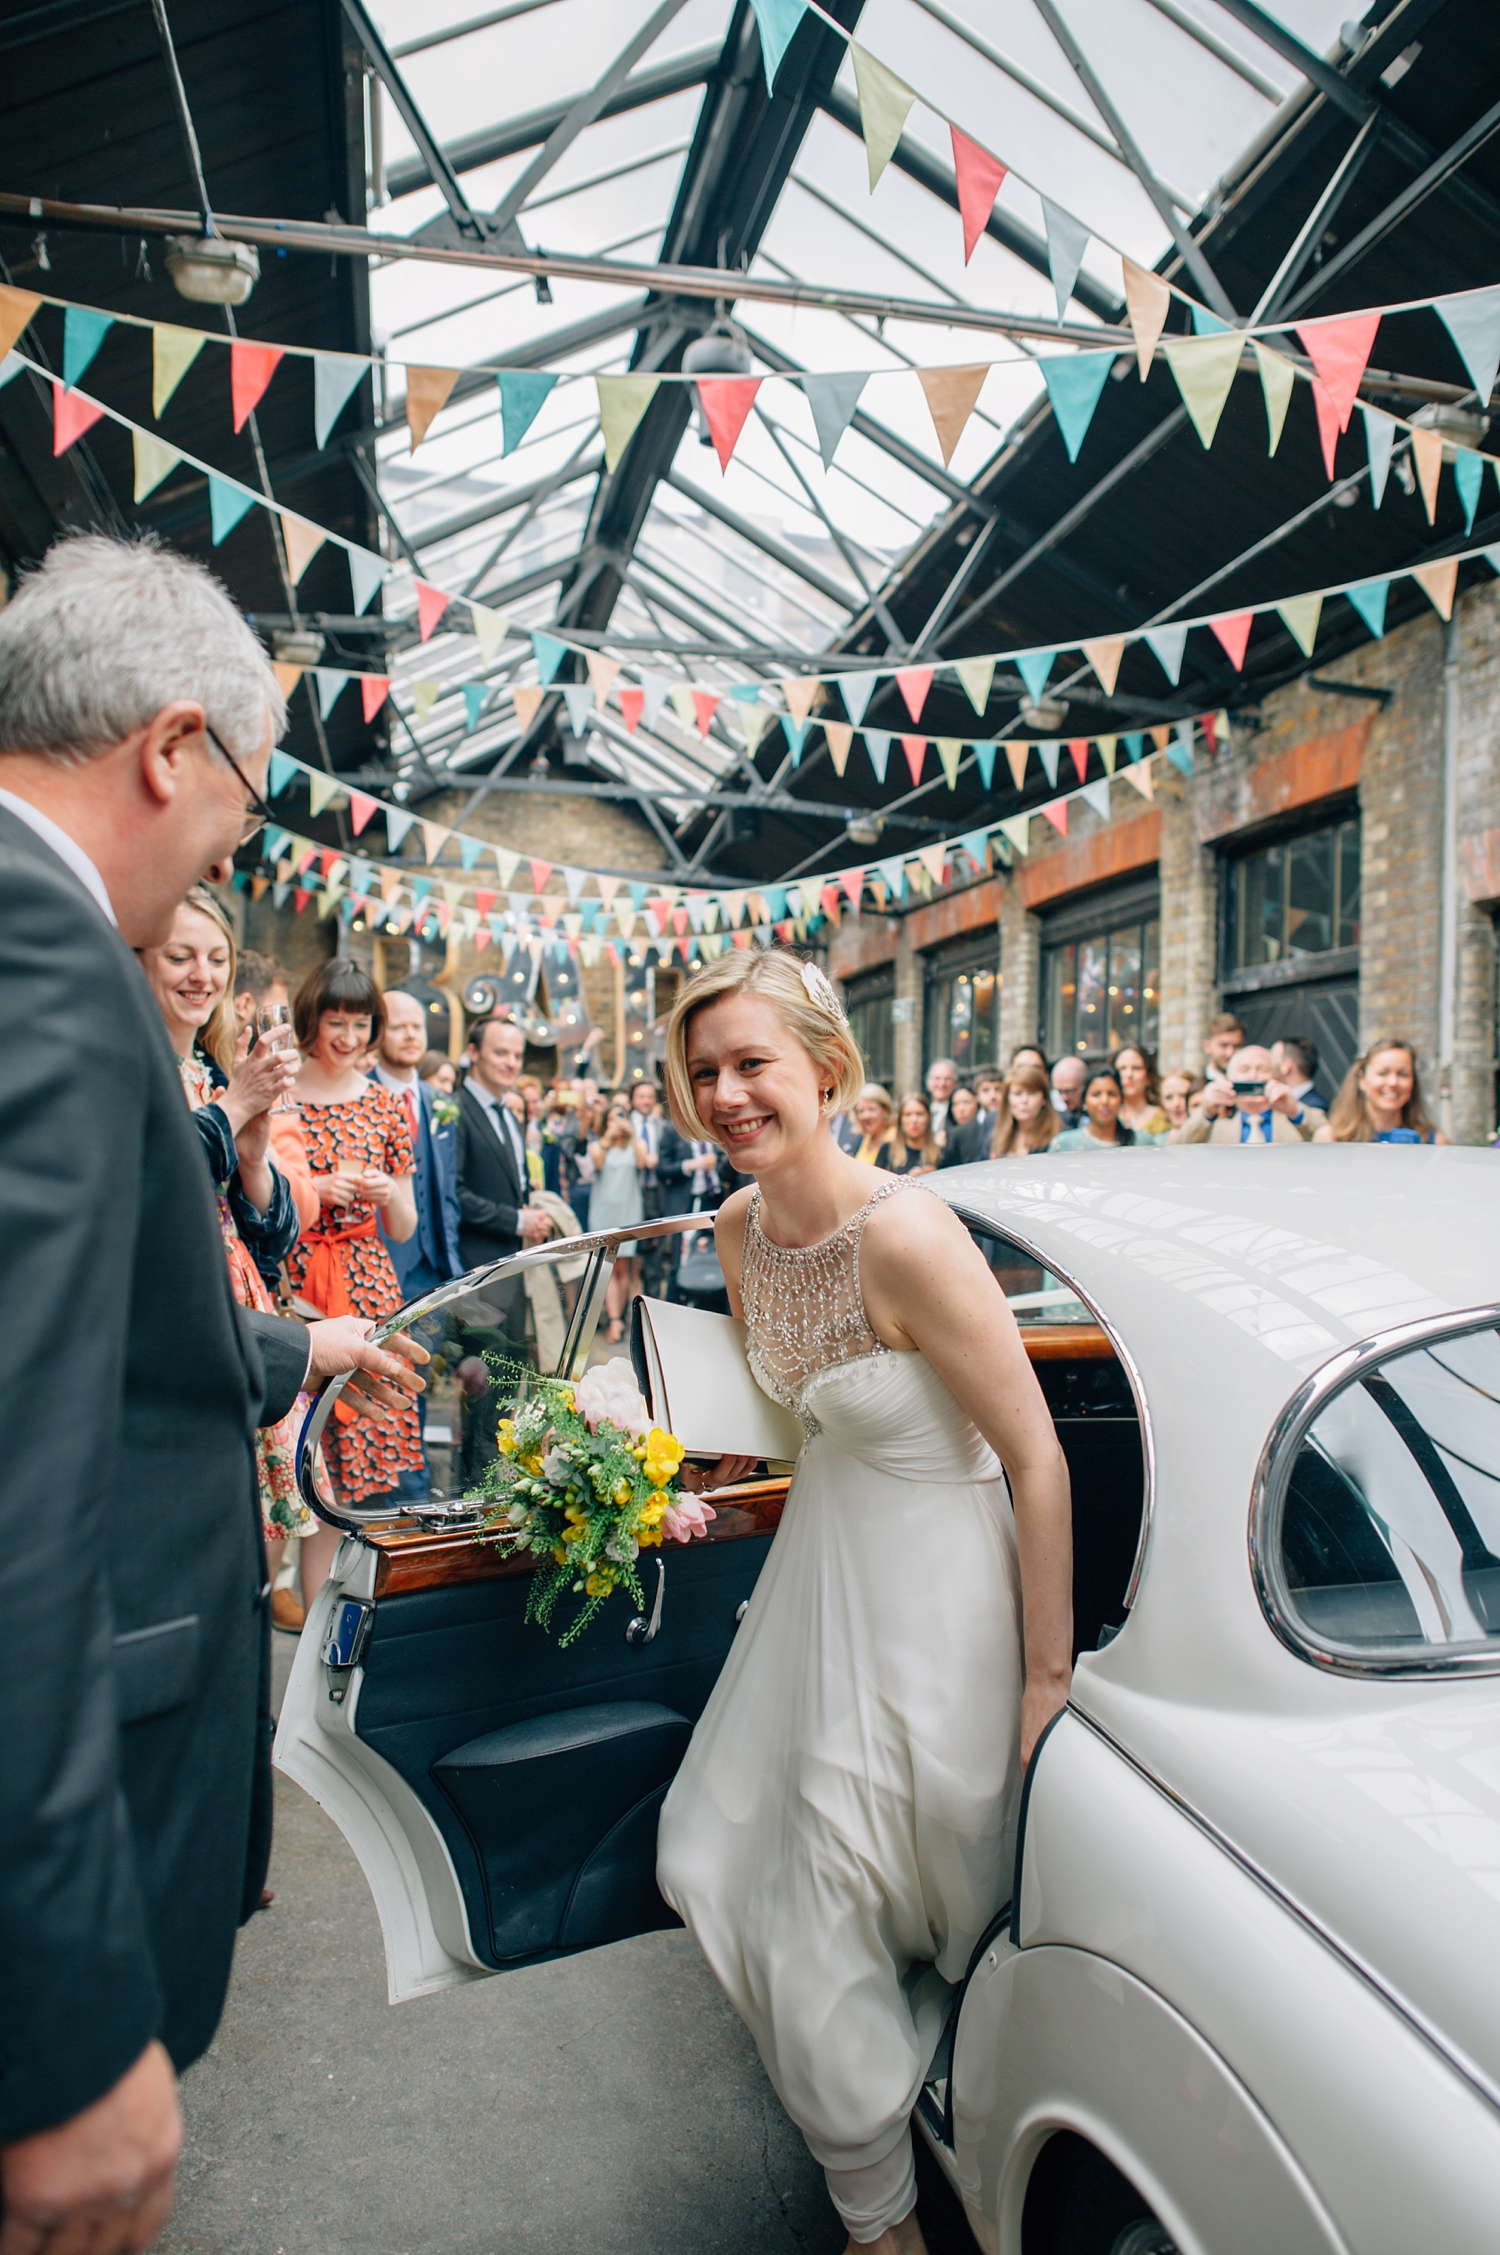 0103-lisa-devine-alternative-wedding-photography-london-hackney-dalston-london-photography-townhall-hotel.JPG